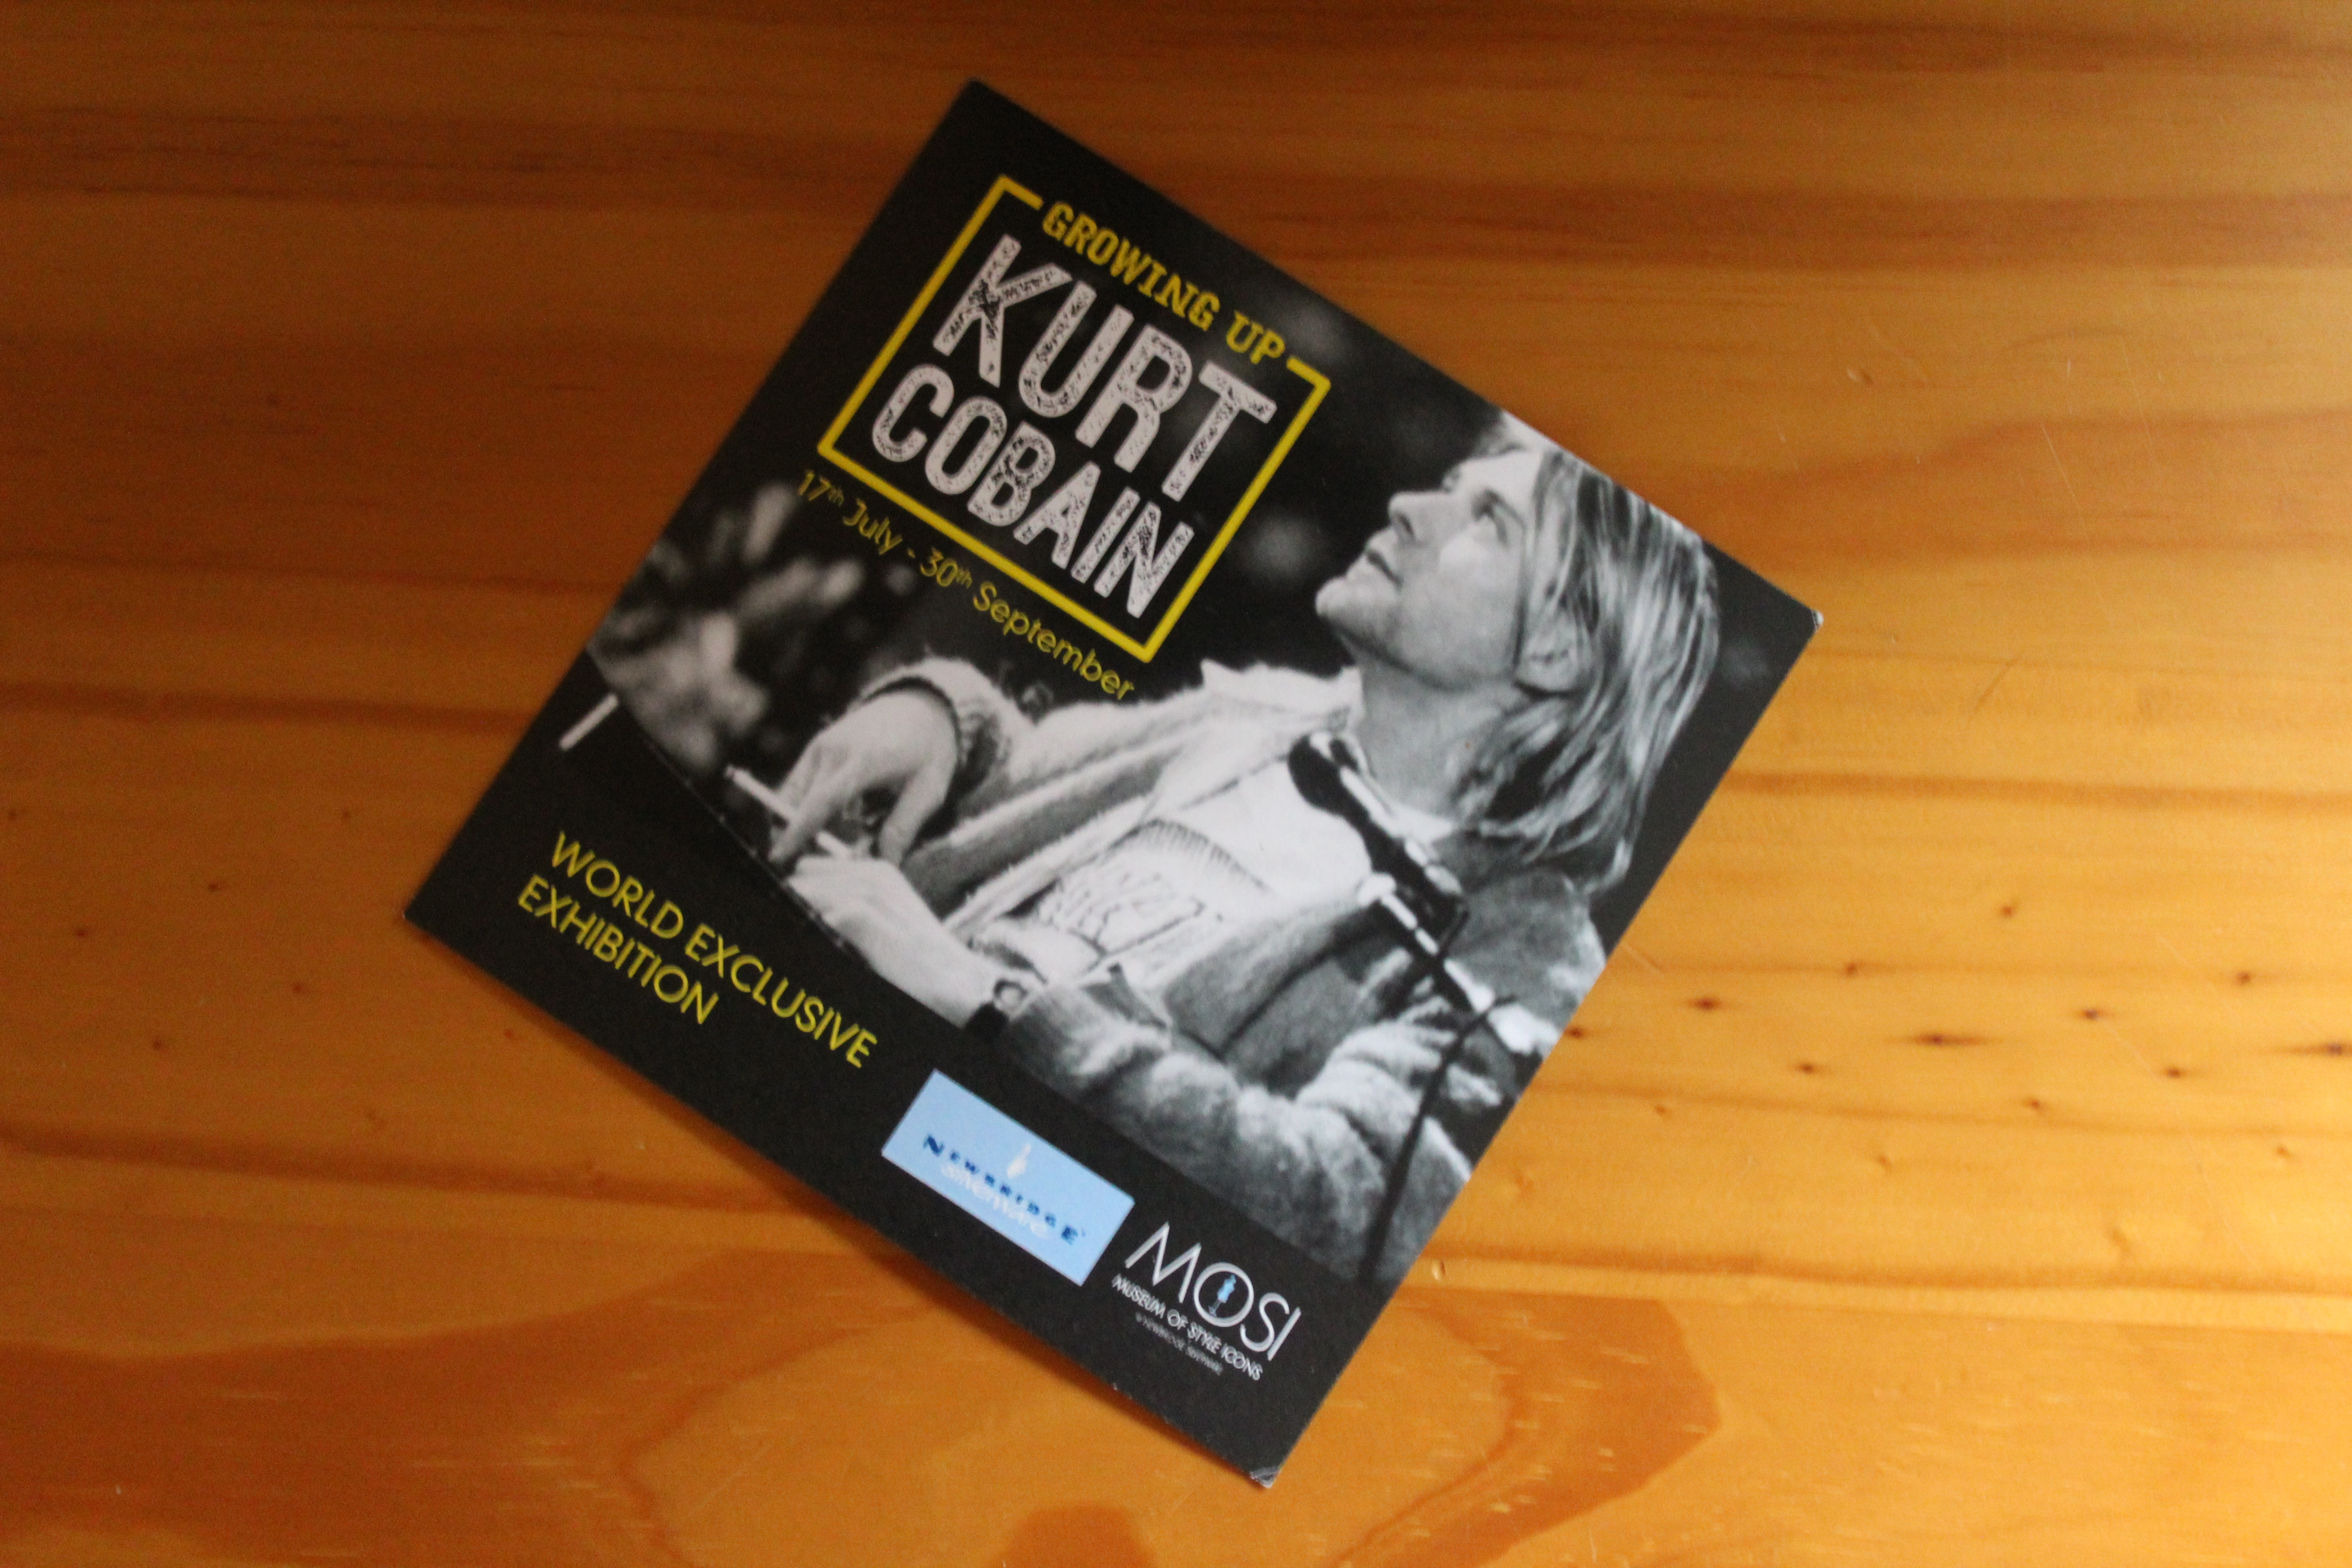 392d43c2f44b The World Exclusive  Growing up Kurt Cobain  Exhibition opened on the 17th  July and runs until 30th September 2018.